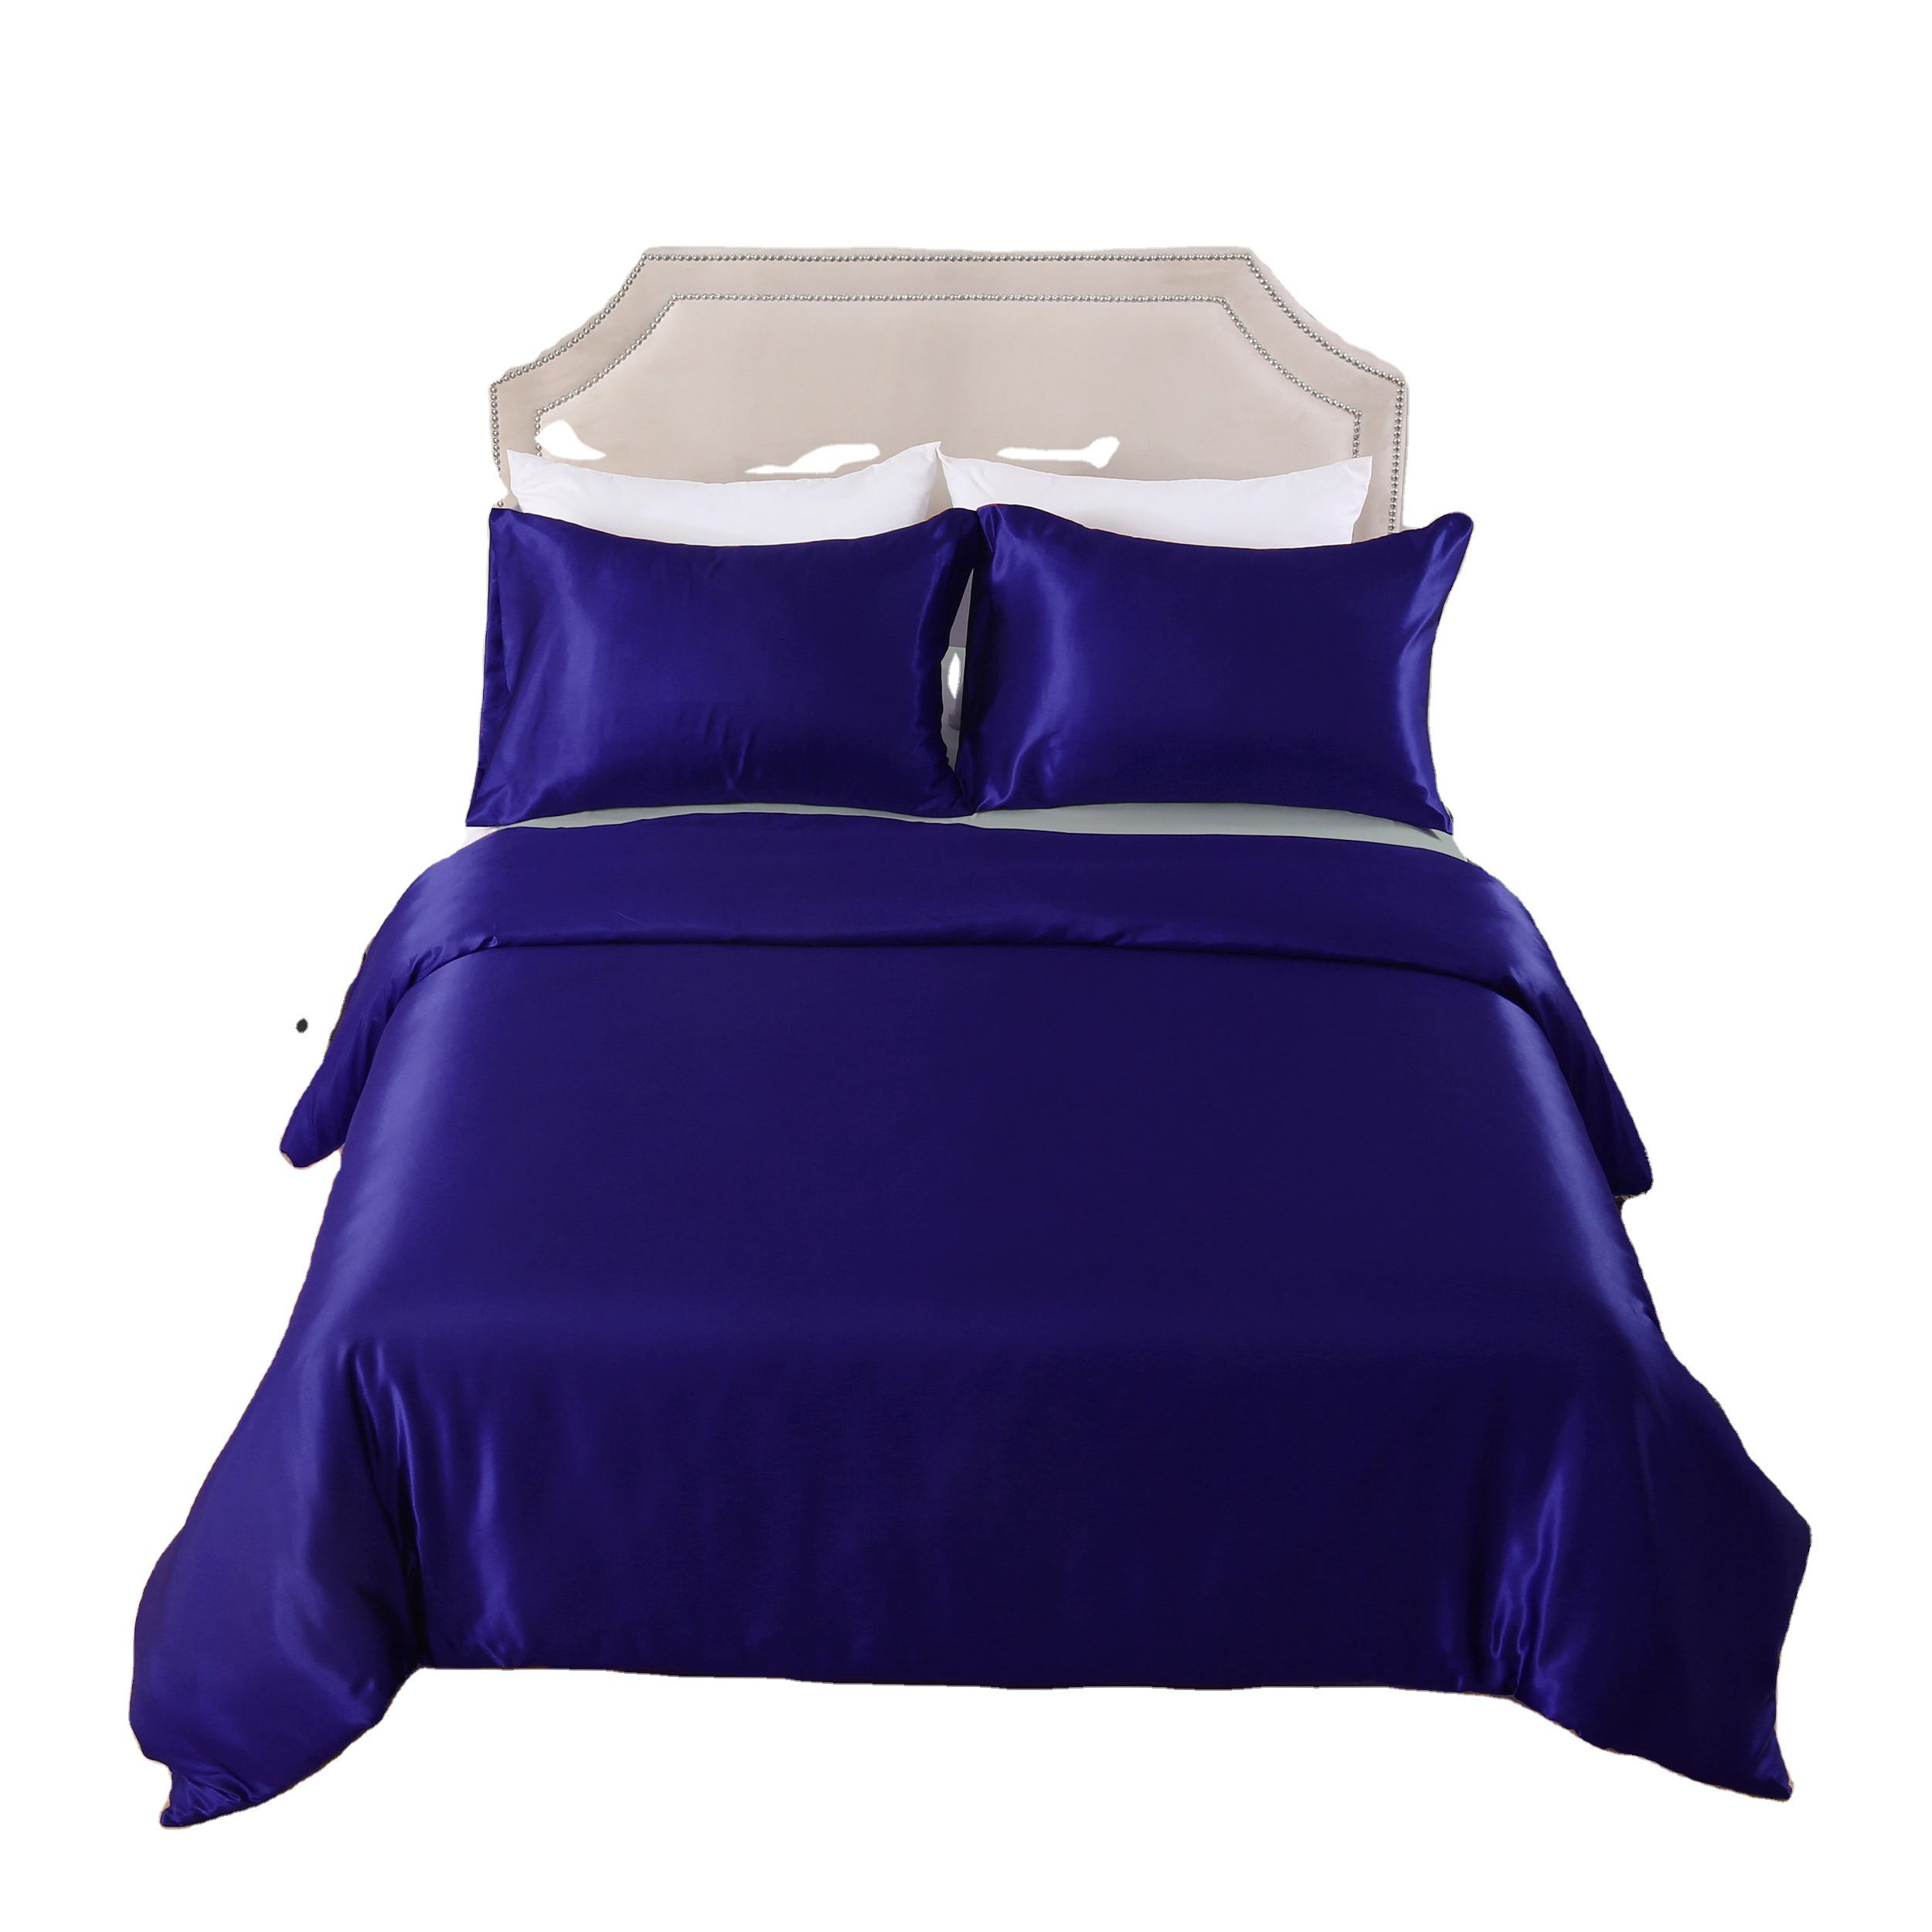 High sales quantity luxury 3d silk satin bed sheet 3pcs bedding set made in China